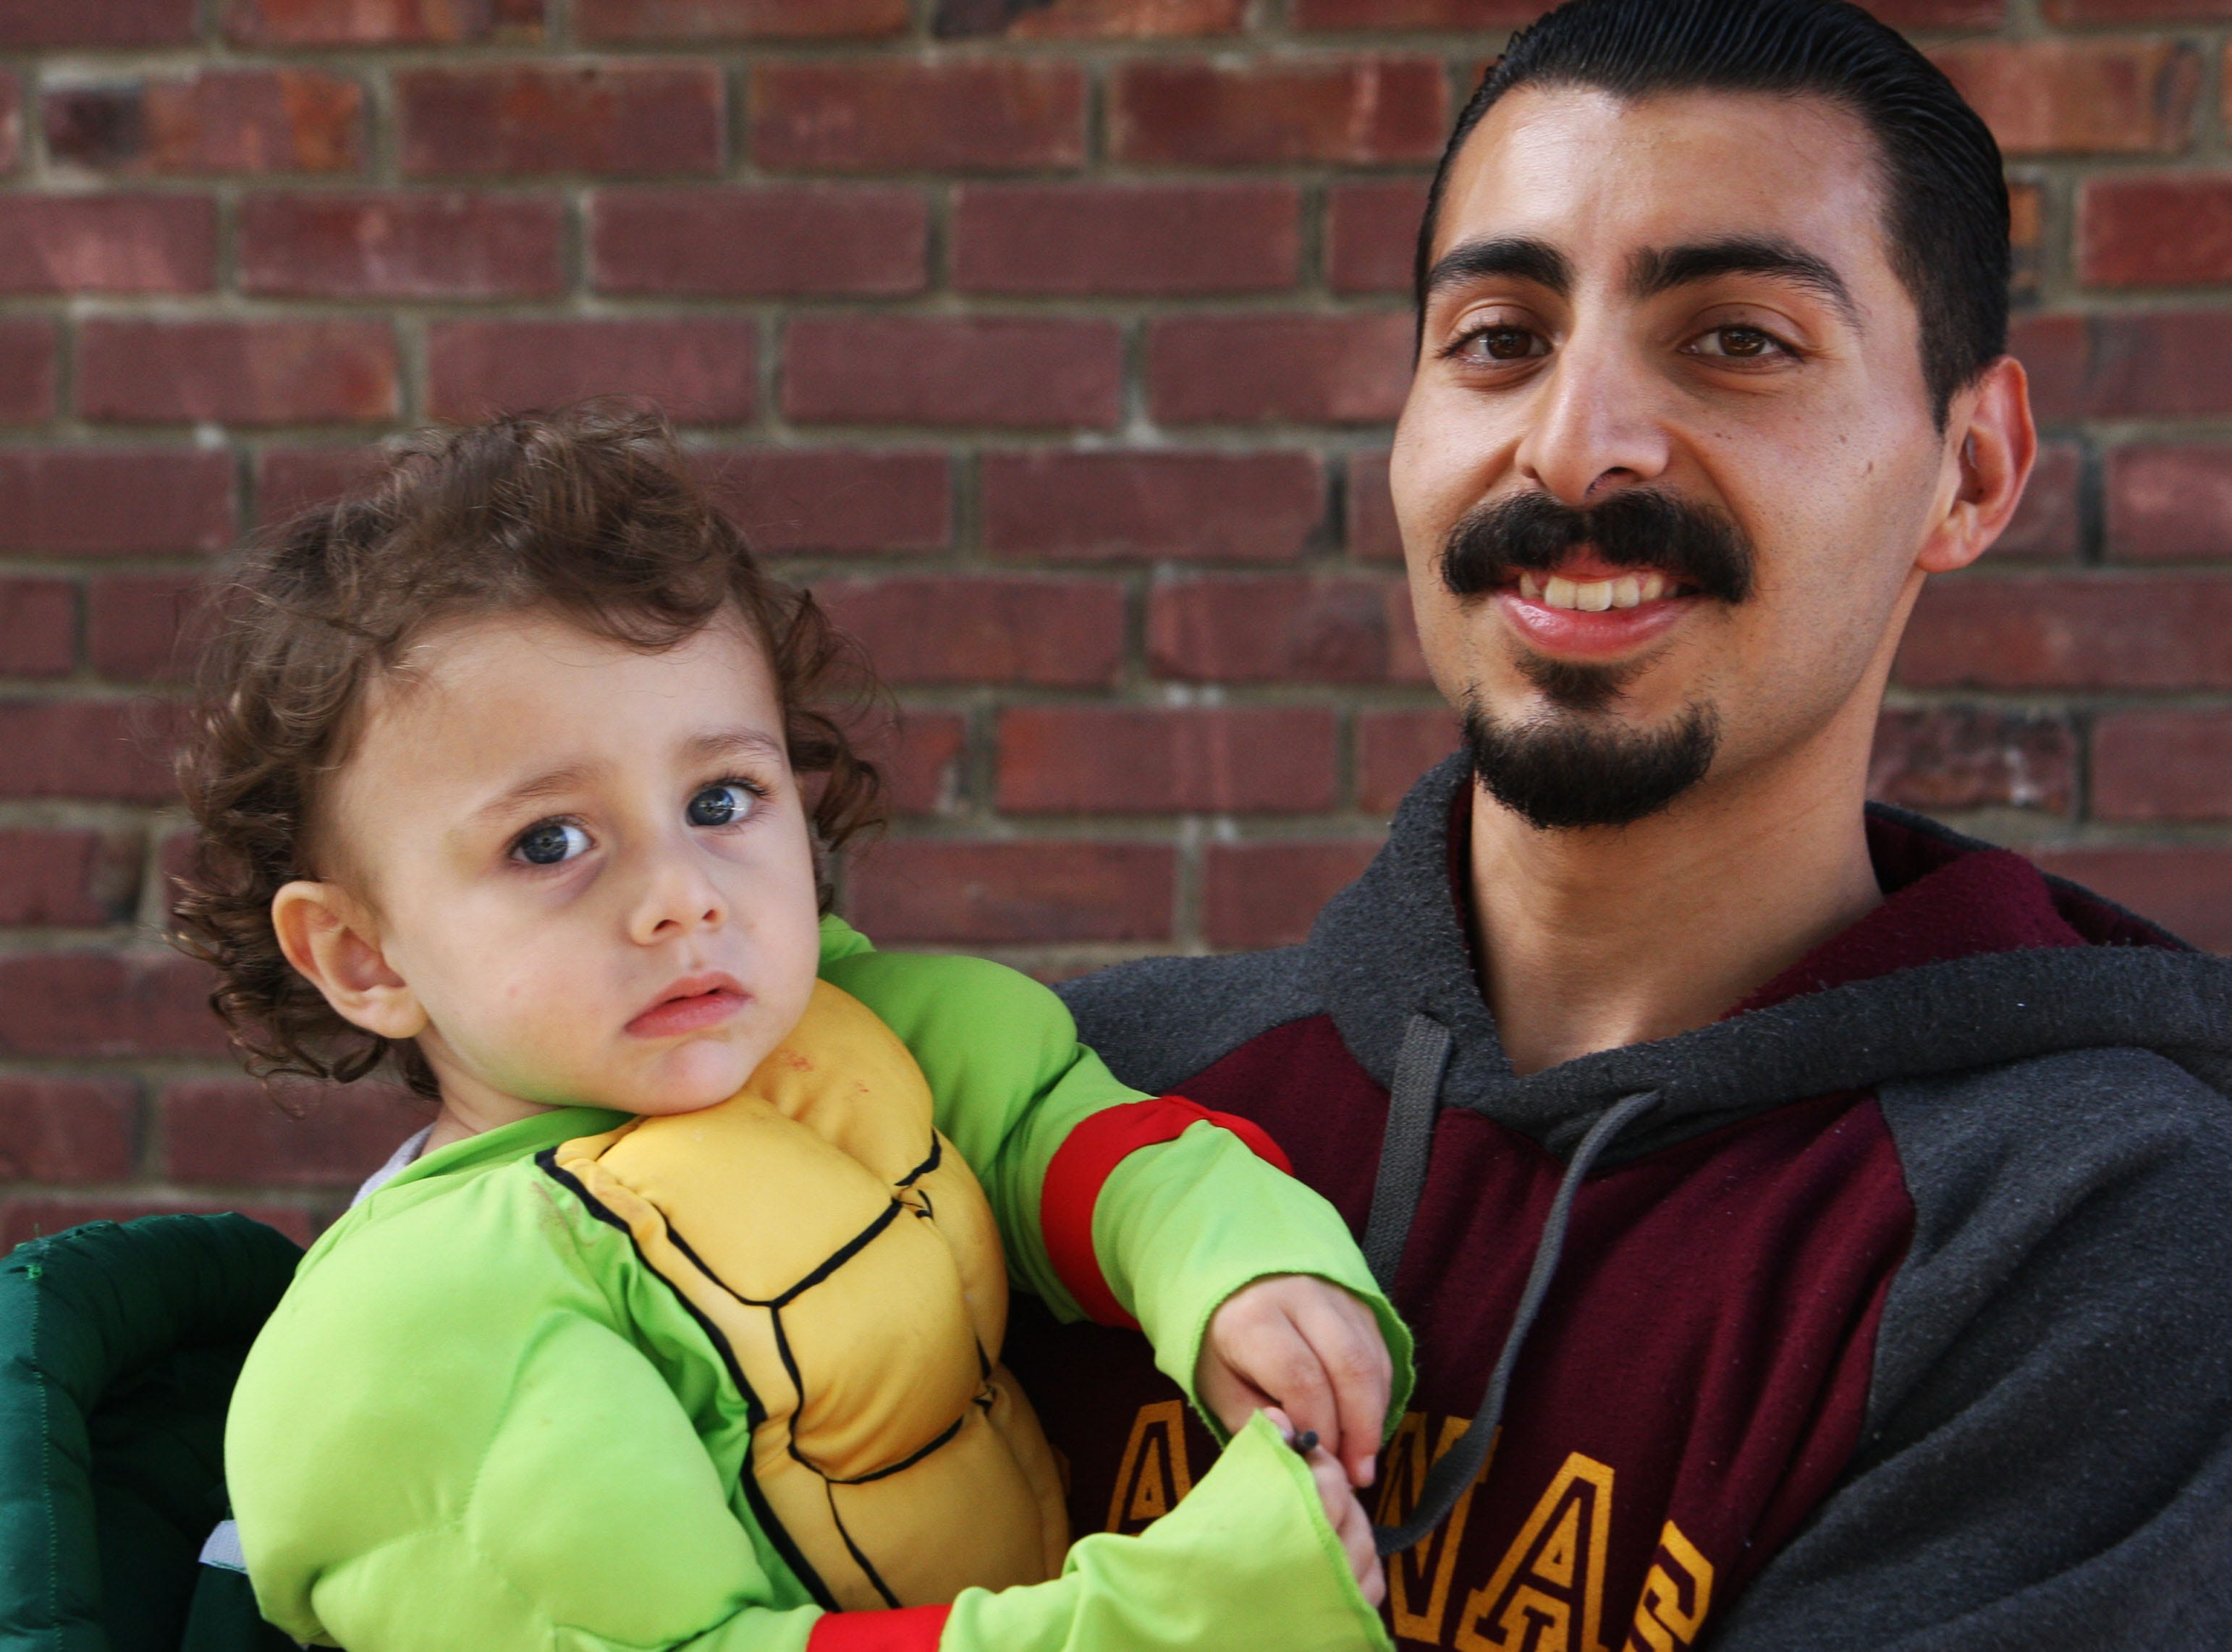 Nehemiah Padilla, 24, holds his son, Nehemiah Saling, 2, as they prepare to go trick-or-treating in Oldtown Saturday. Saling, Nehemiah's mother Britani Saling says, just learned what a pumpkin is.